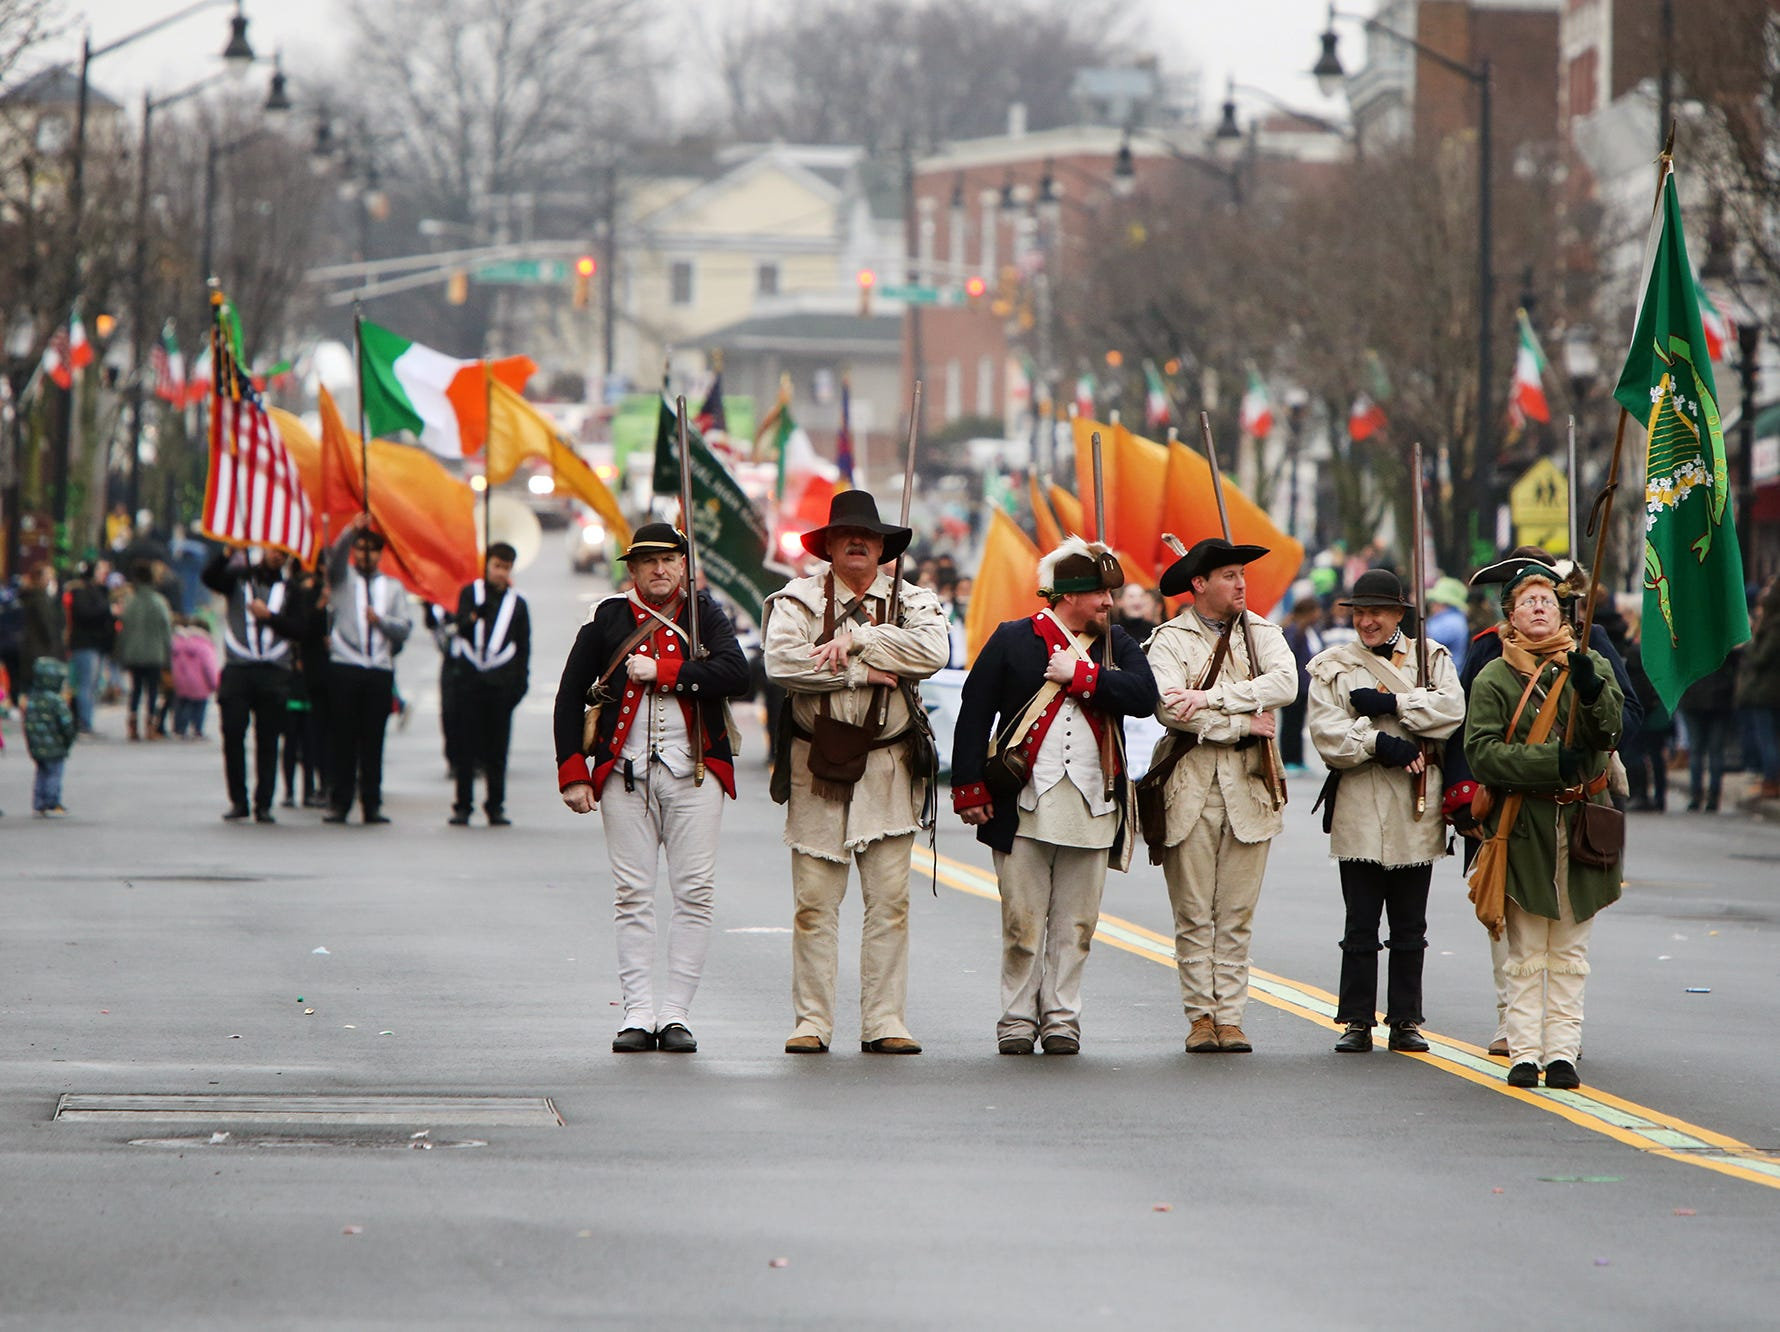 Woodbridge St. Patrick's Day Parade coming down Main St. Sunday March 10.